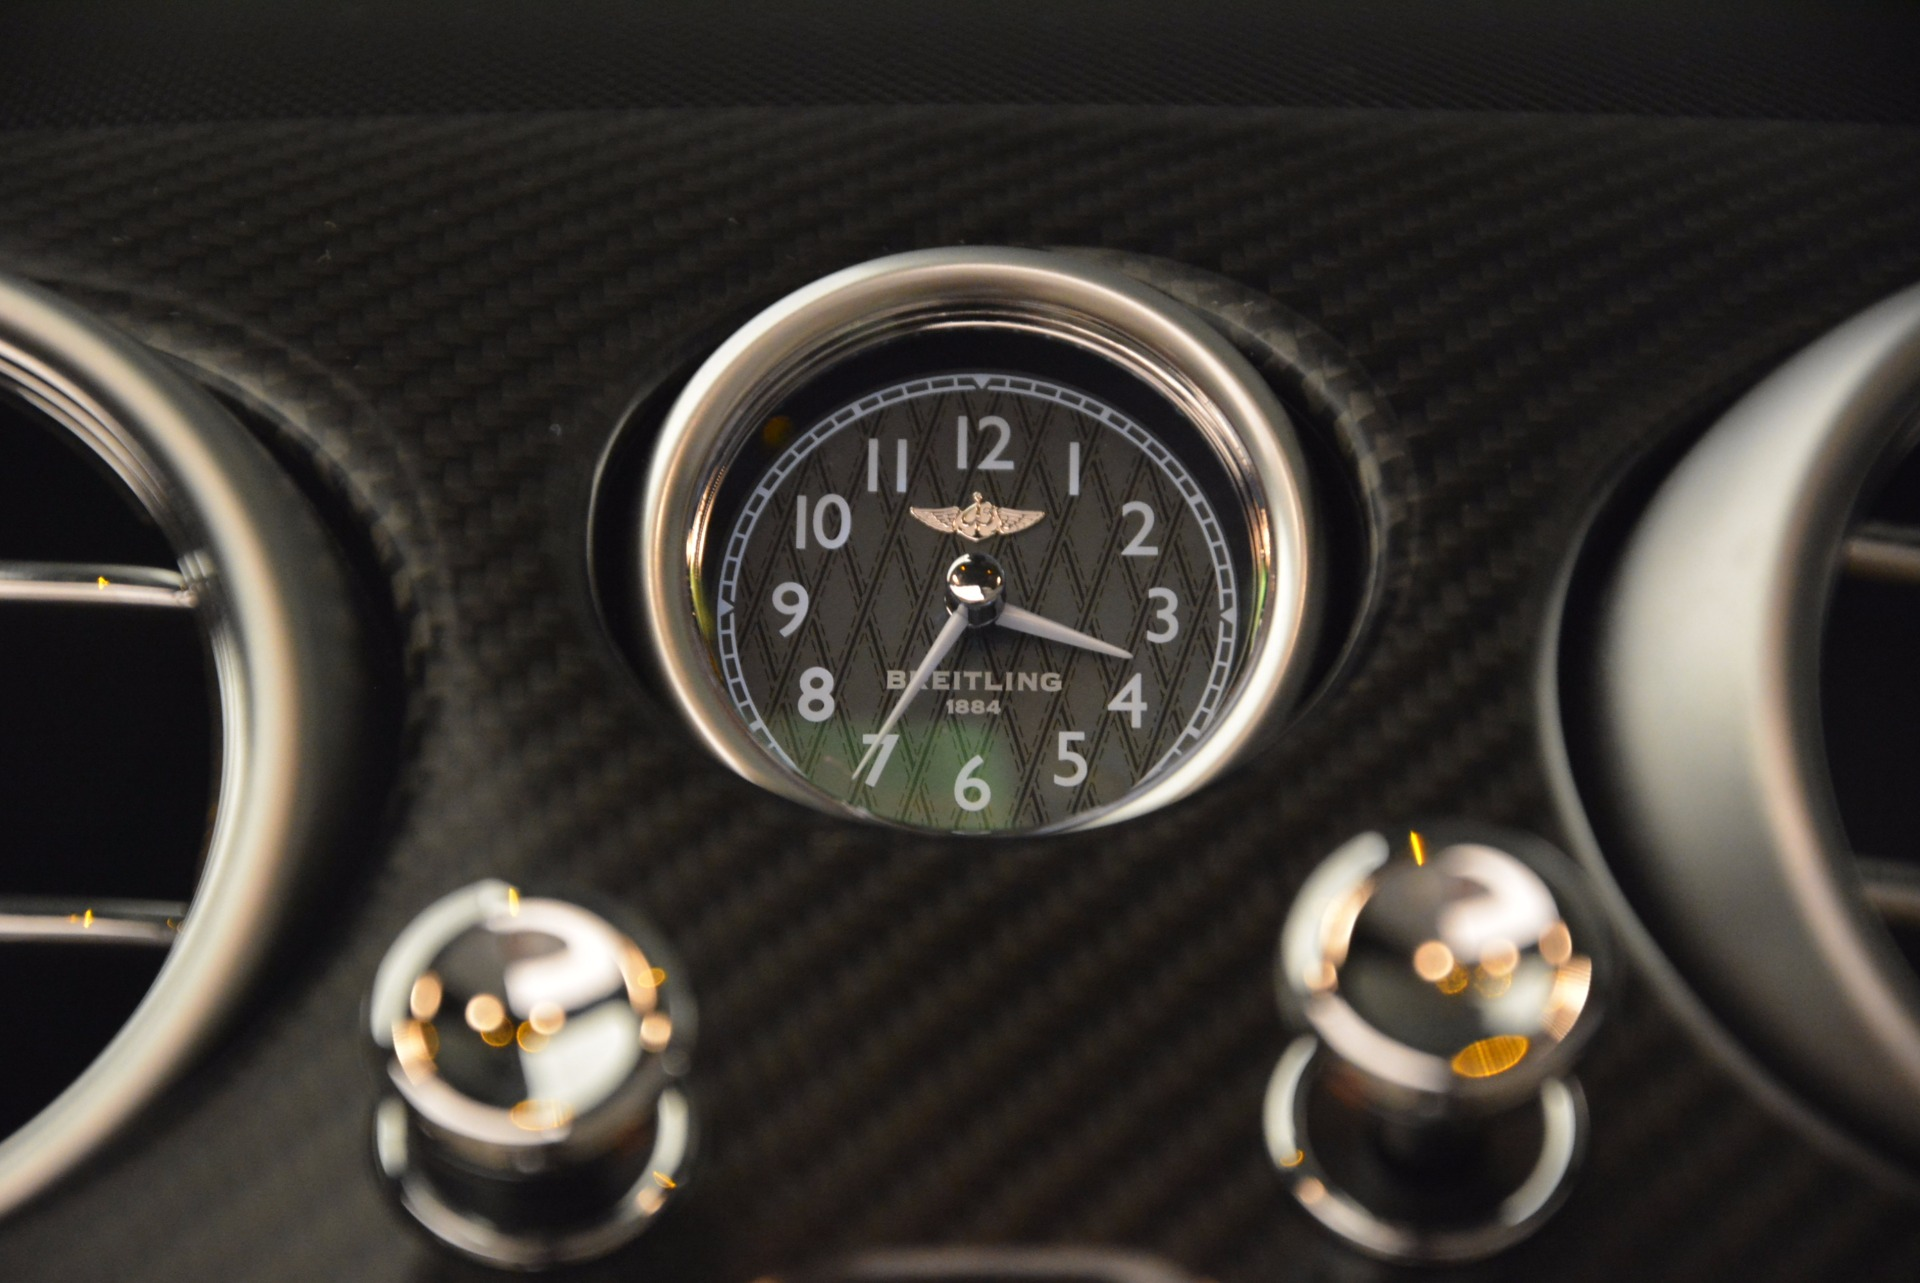 Used 2013 Bentley Continental GT V8 Le Mans Edition, 1 of 48 For Sale In Westport, CT 1288_p40